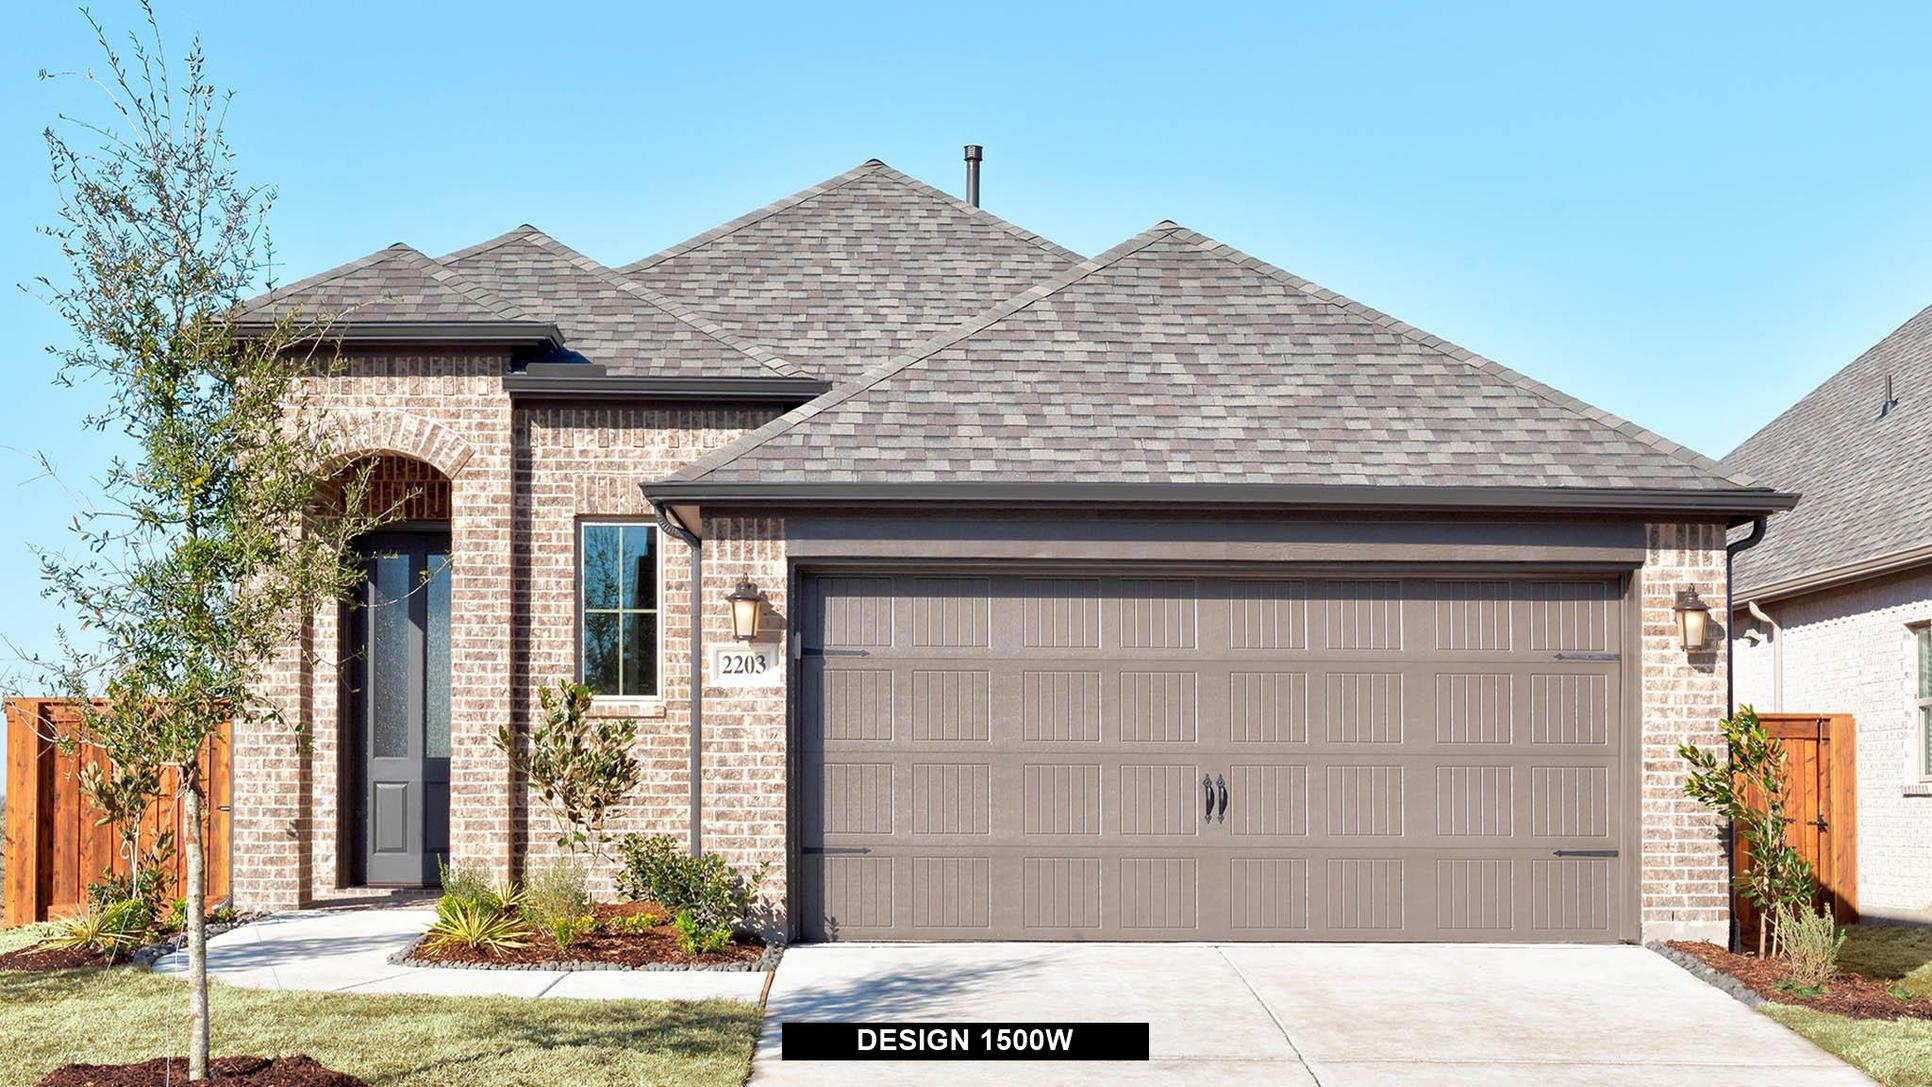 Plan 1500W:Representative photo.  Features and specifications may vary by community.